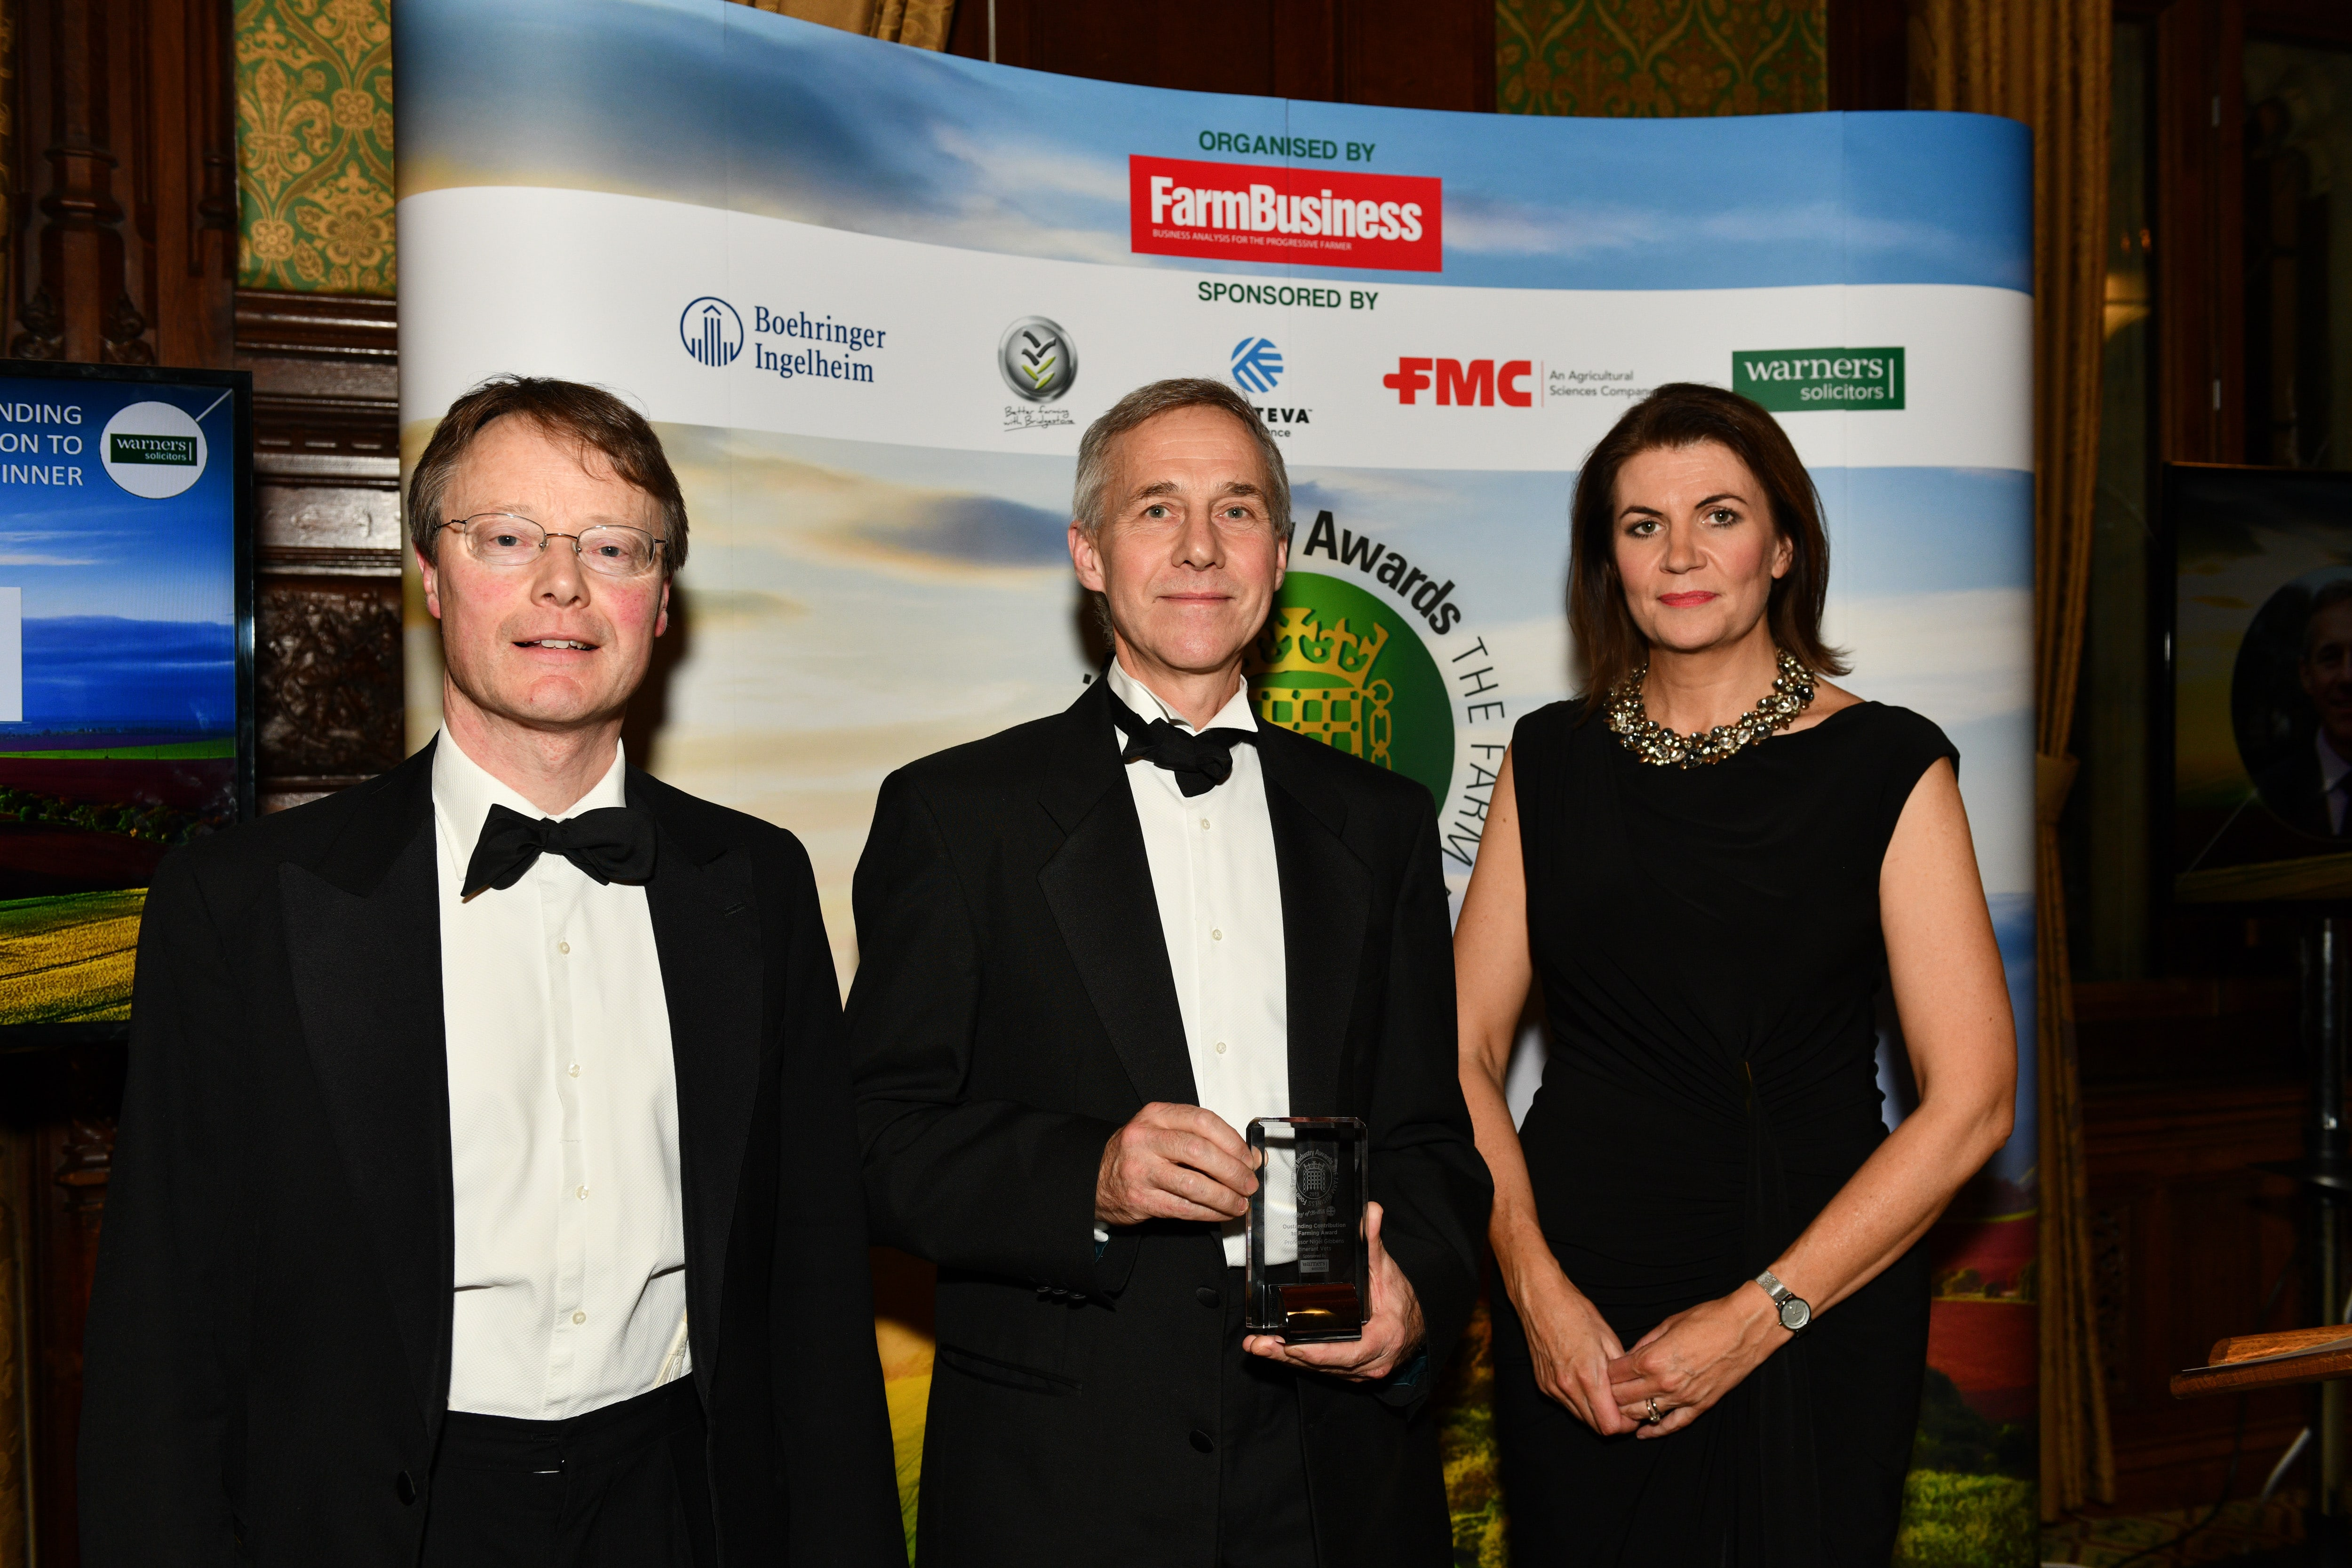 Food and Farming Industry Awards 2019